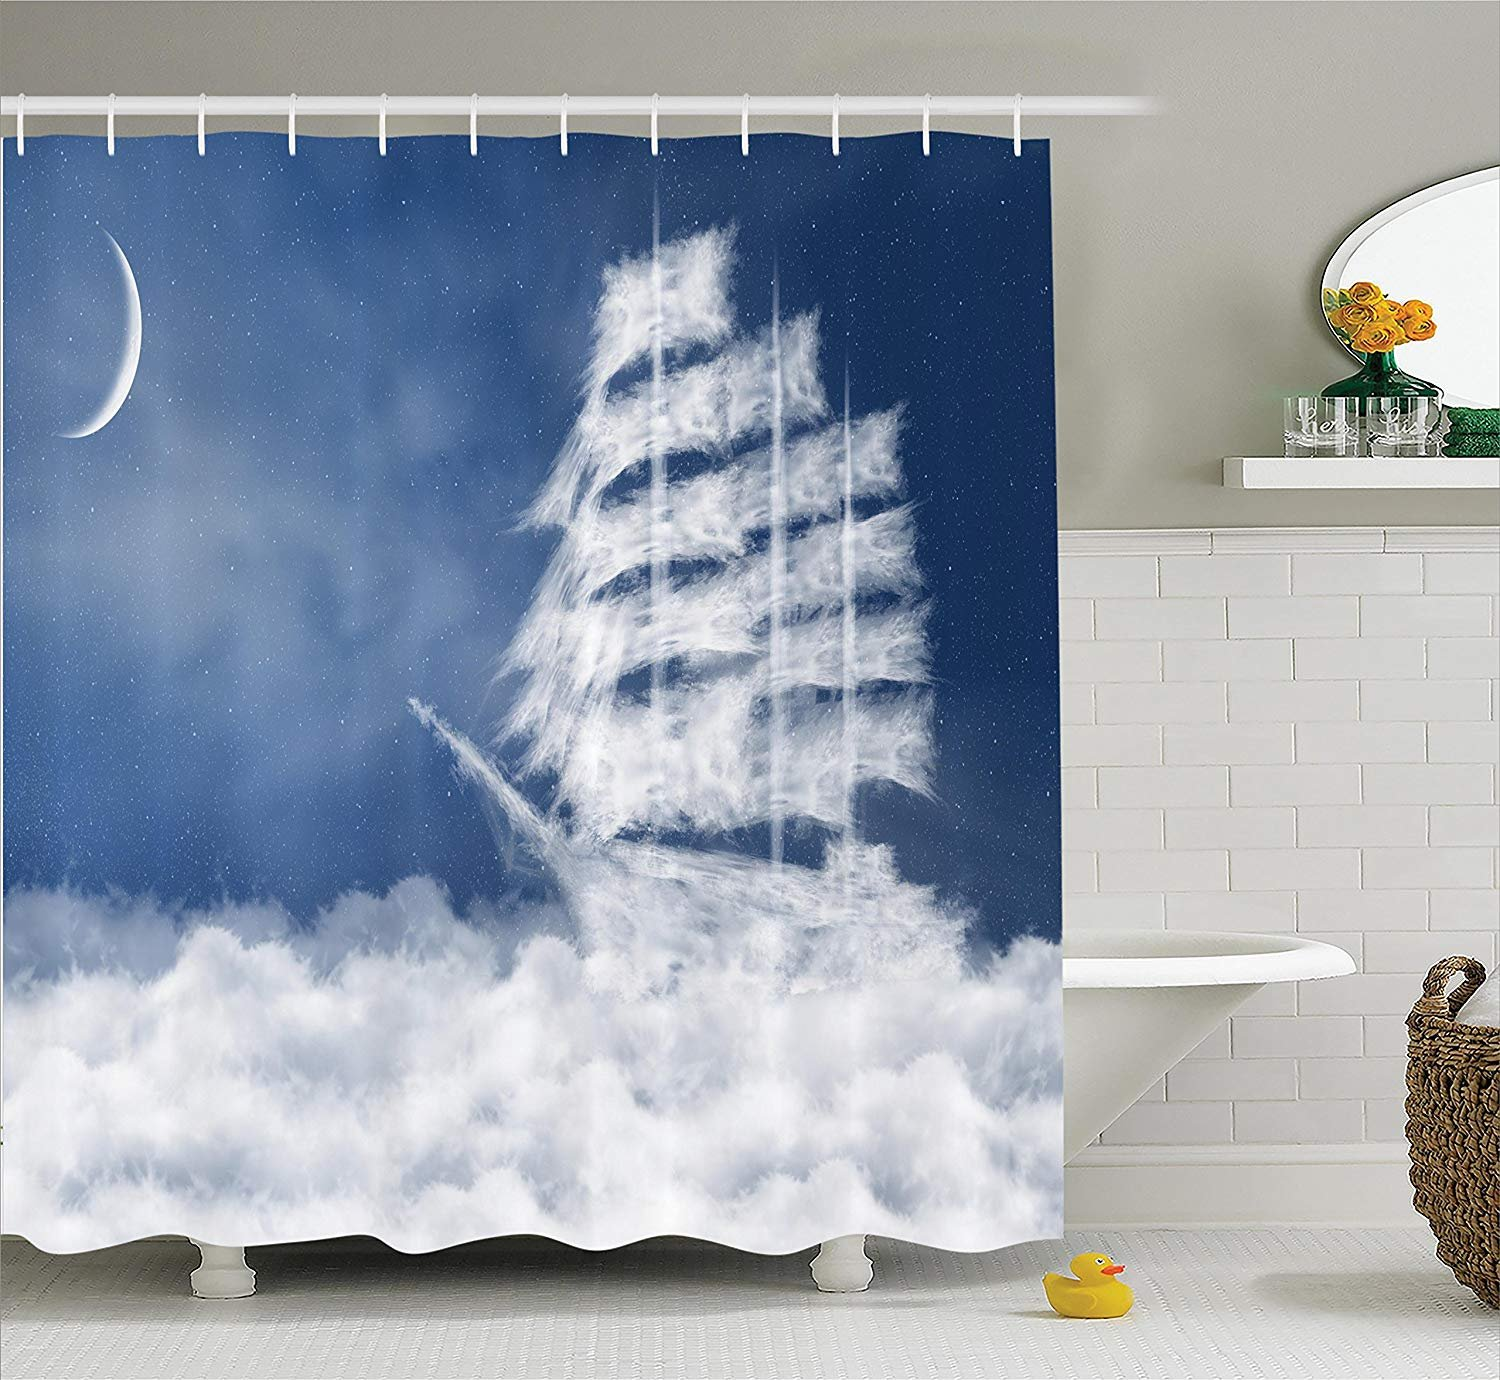 DIY Nautical Decor Shower Curtain Set, A Yacht in The Ocean Made and Shaped with Fluffy Clouds Atmospheric Imaginary Sky Print, Bathroom Curtain Home Decorations Machine Washable, 72 x 72 Inches